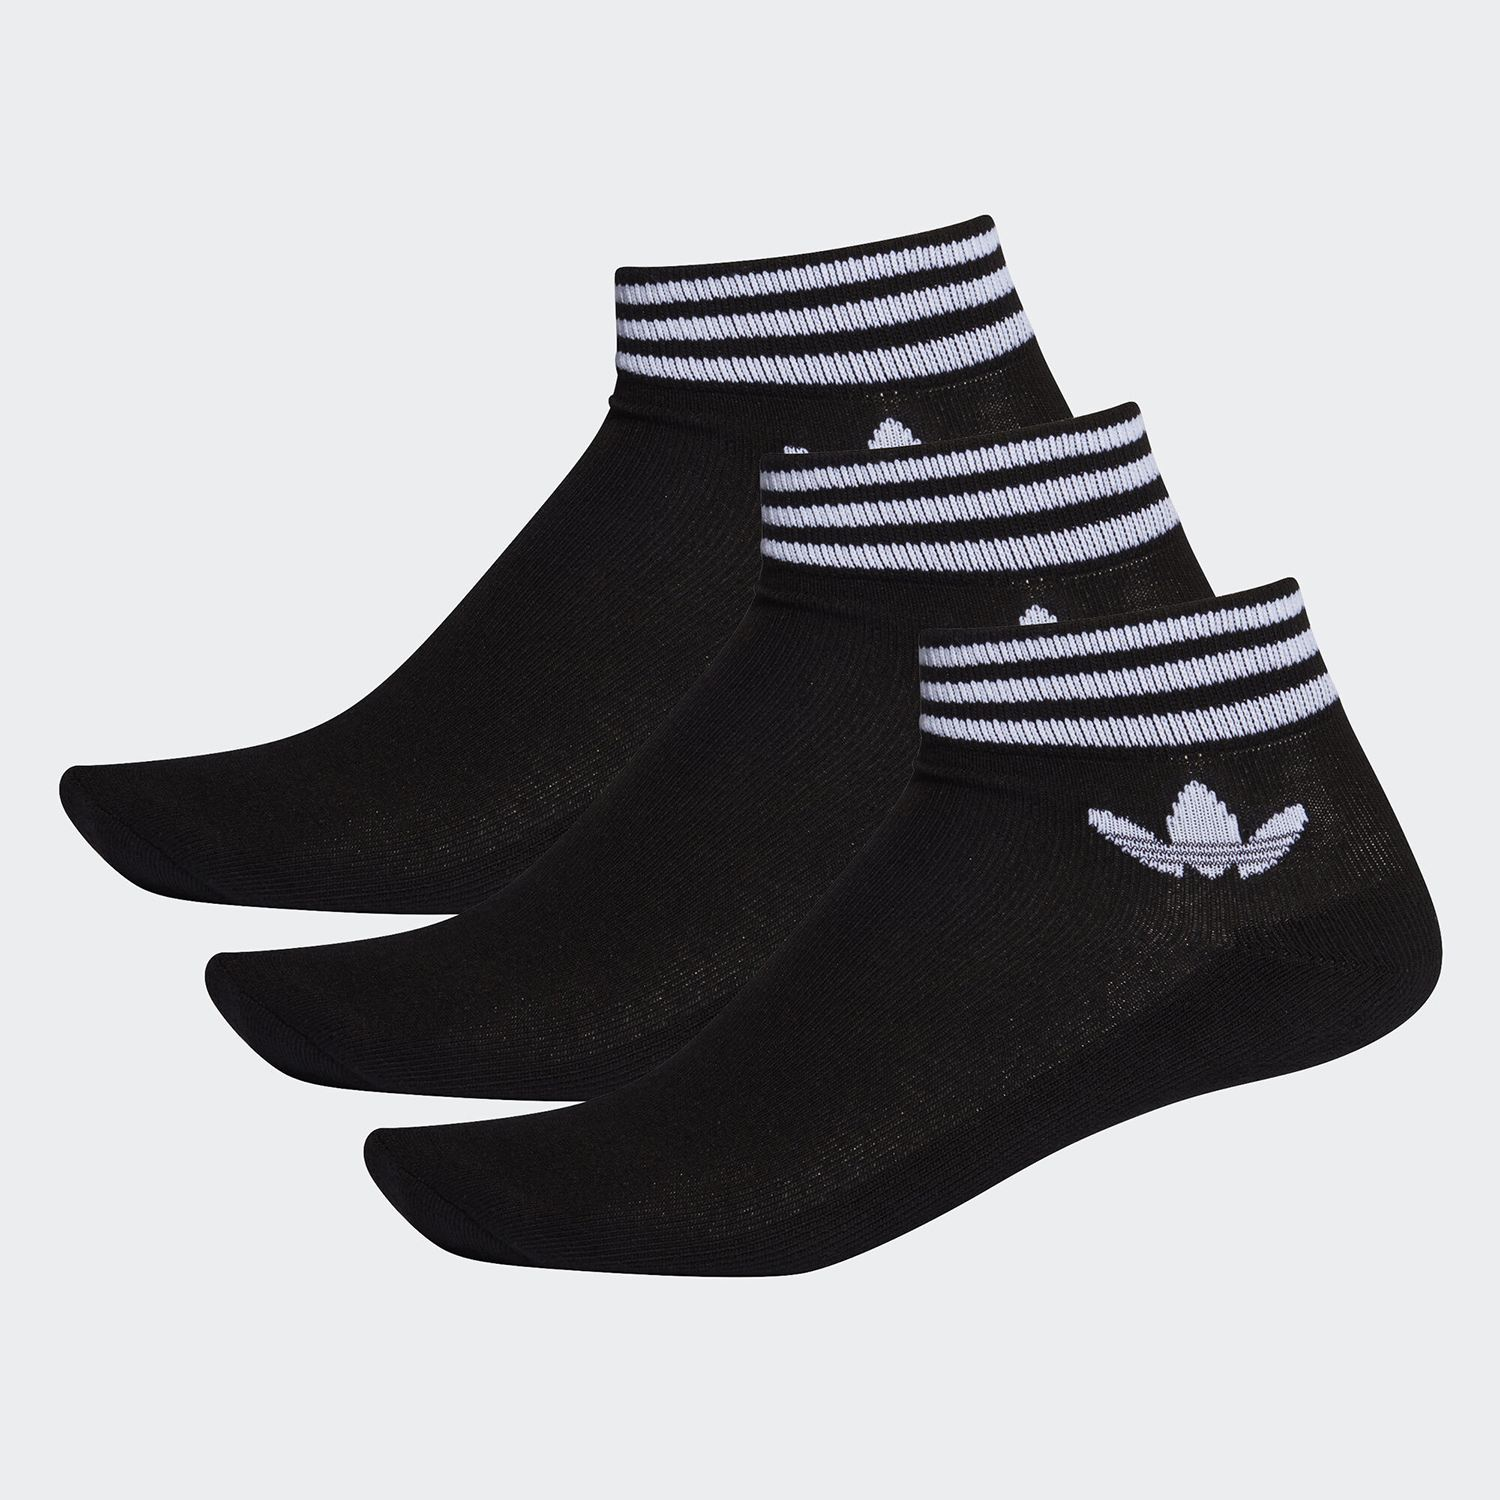 adidas Originals Trefoil Ankle Socks 3 Pairs (EE1151)